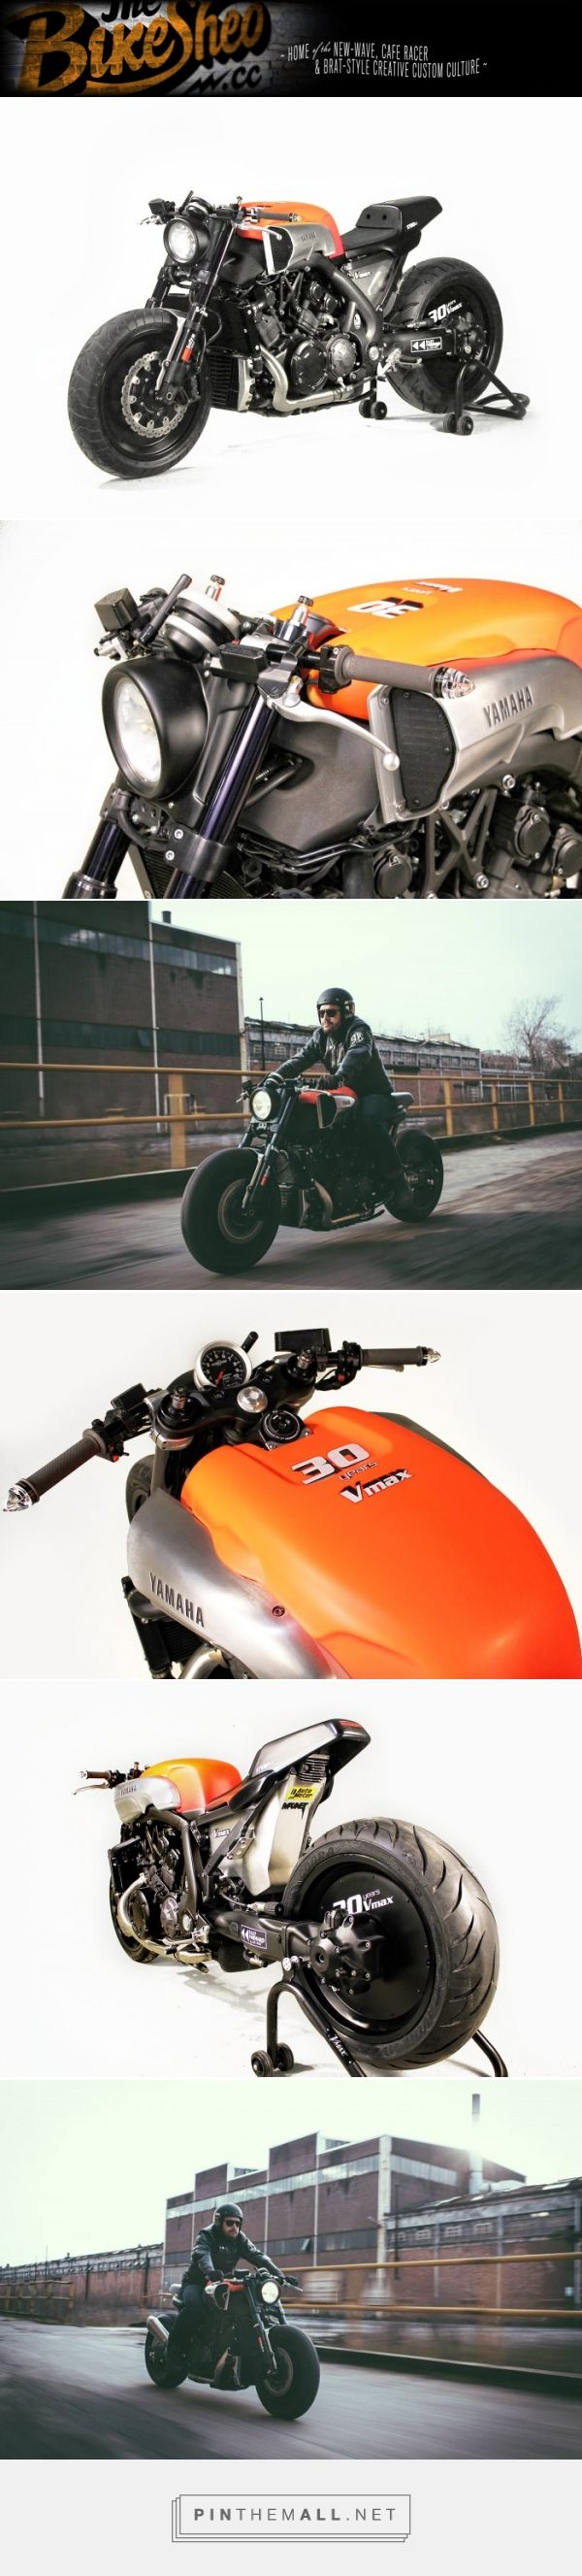 JvB Moto VMax Infrared - the Bike Shed http://thebikeshed.cc/2015/02/13/jvb-moto-vmax-infrared/ - created on 2015-02-14 12:26:35